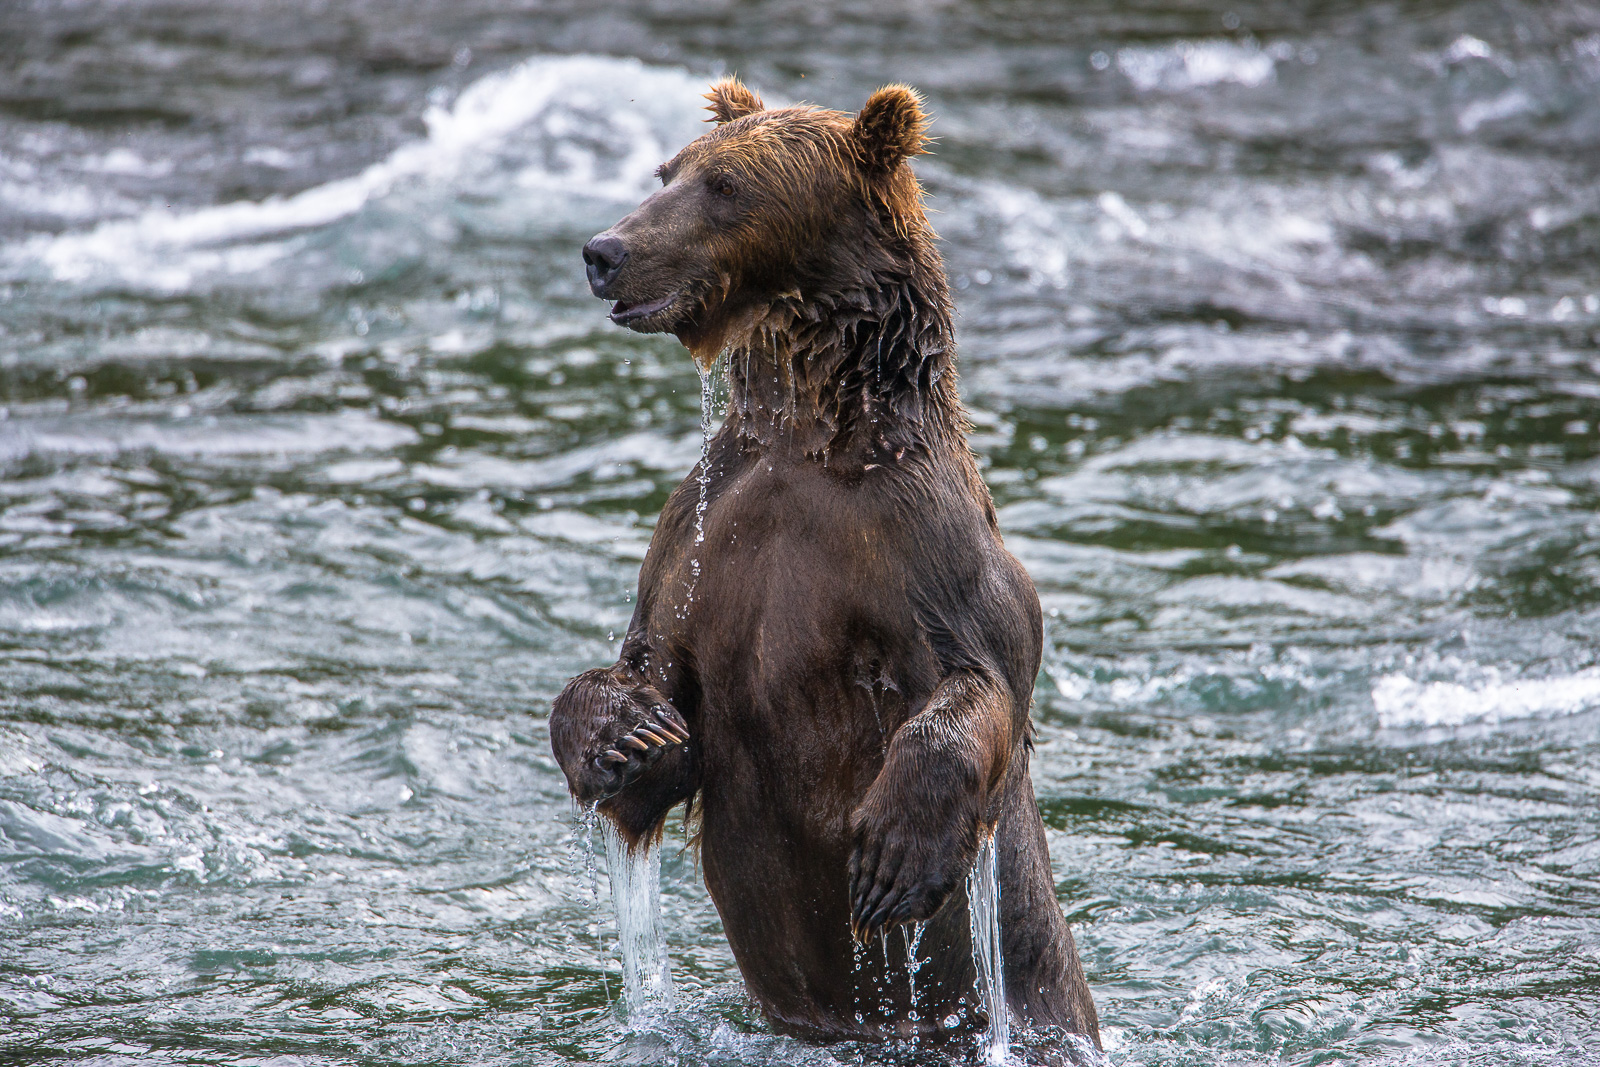 Dip and Drip,Alaska,Brooks Falls,Salmon Fishing,Katmai National Park,Grizzly,Water, bear, photo